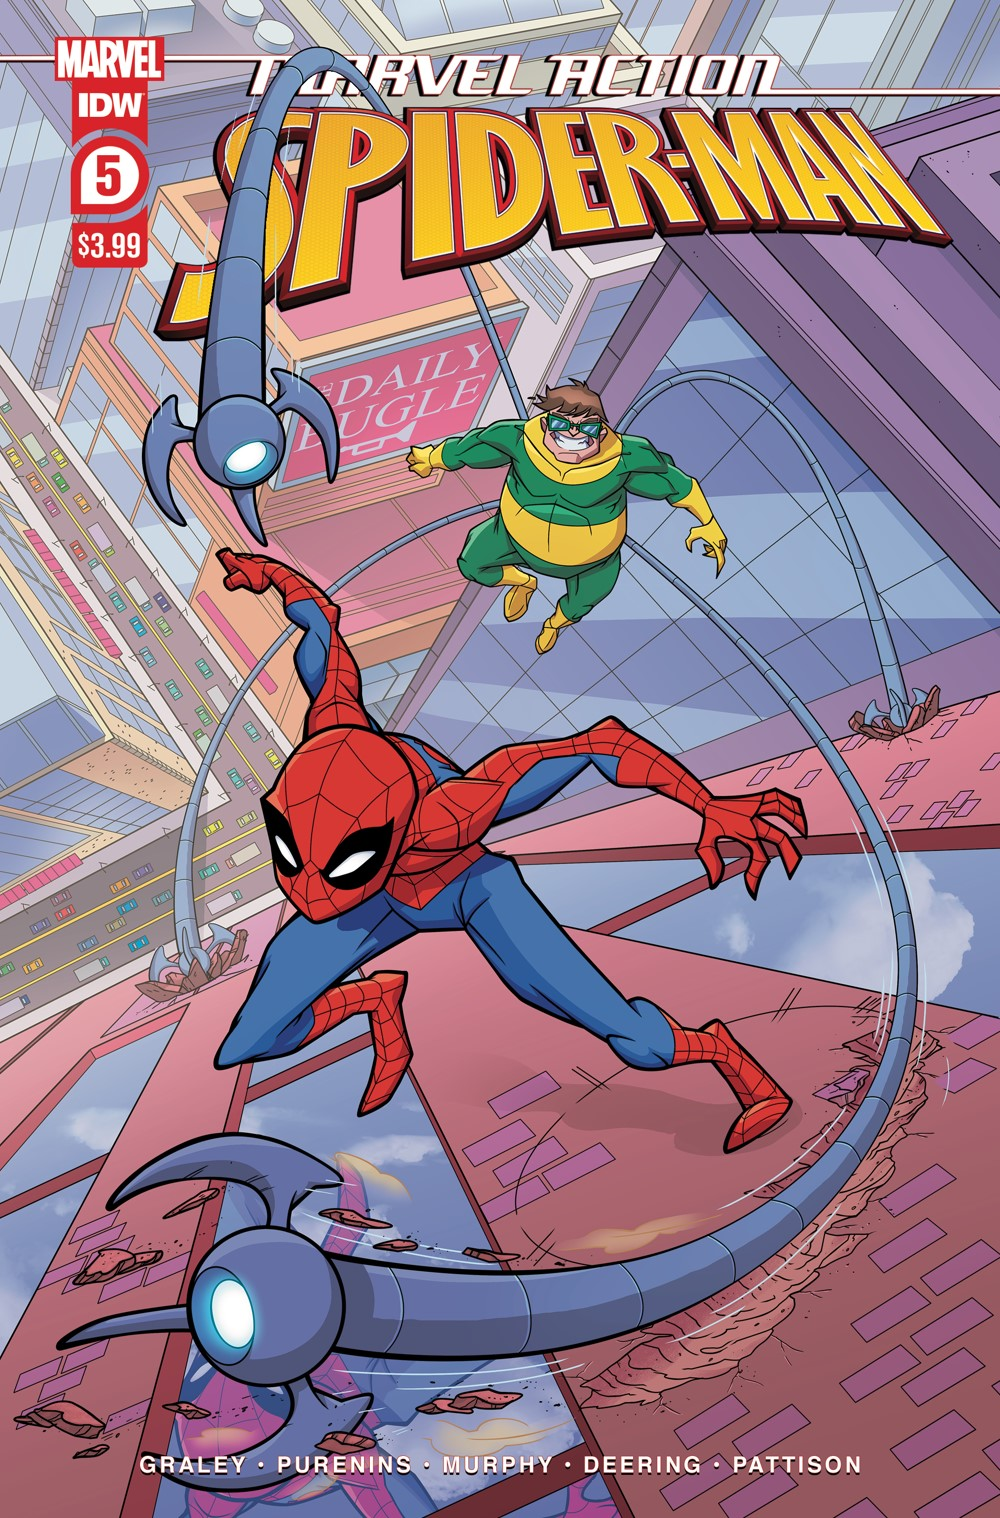 SpidermanV3-05_cvrA ComicList: IDW Publishing New Releases for 09/22/2021